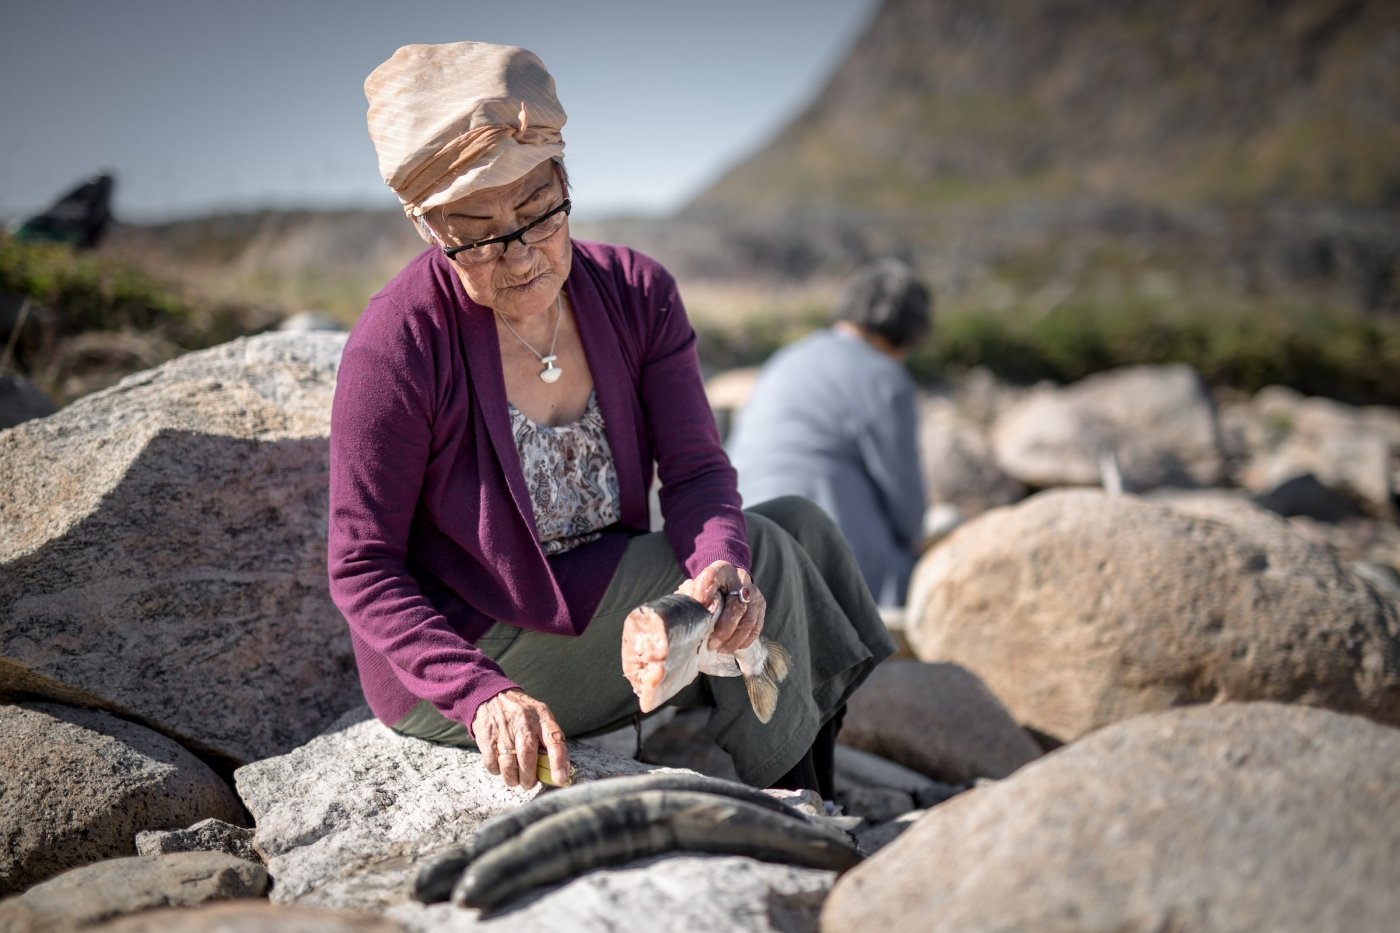 A woman preparing fish for a meal on the beach in Narsaq in South Greenland. Photo by Mads Pihl - Visit Greenland